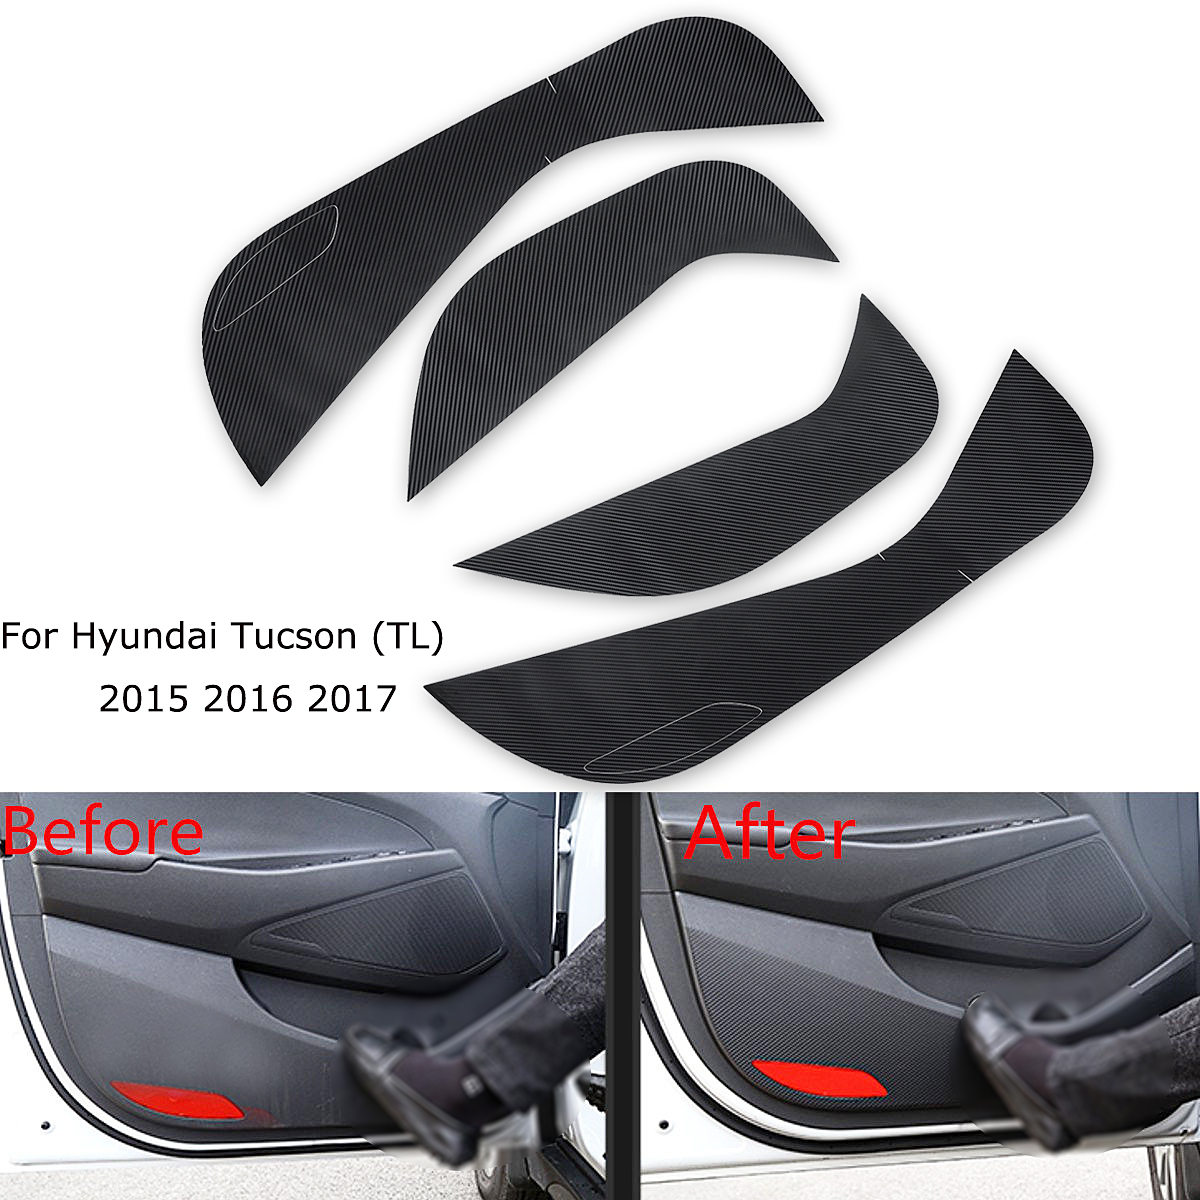 4x Car Interior Inner Door Protective Anti Kick Film Sticker Carbon Fiber Decal For Hyundai Tucson TL 2015 2016 2017 2018 2019